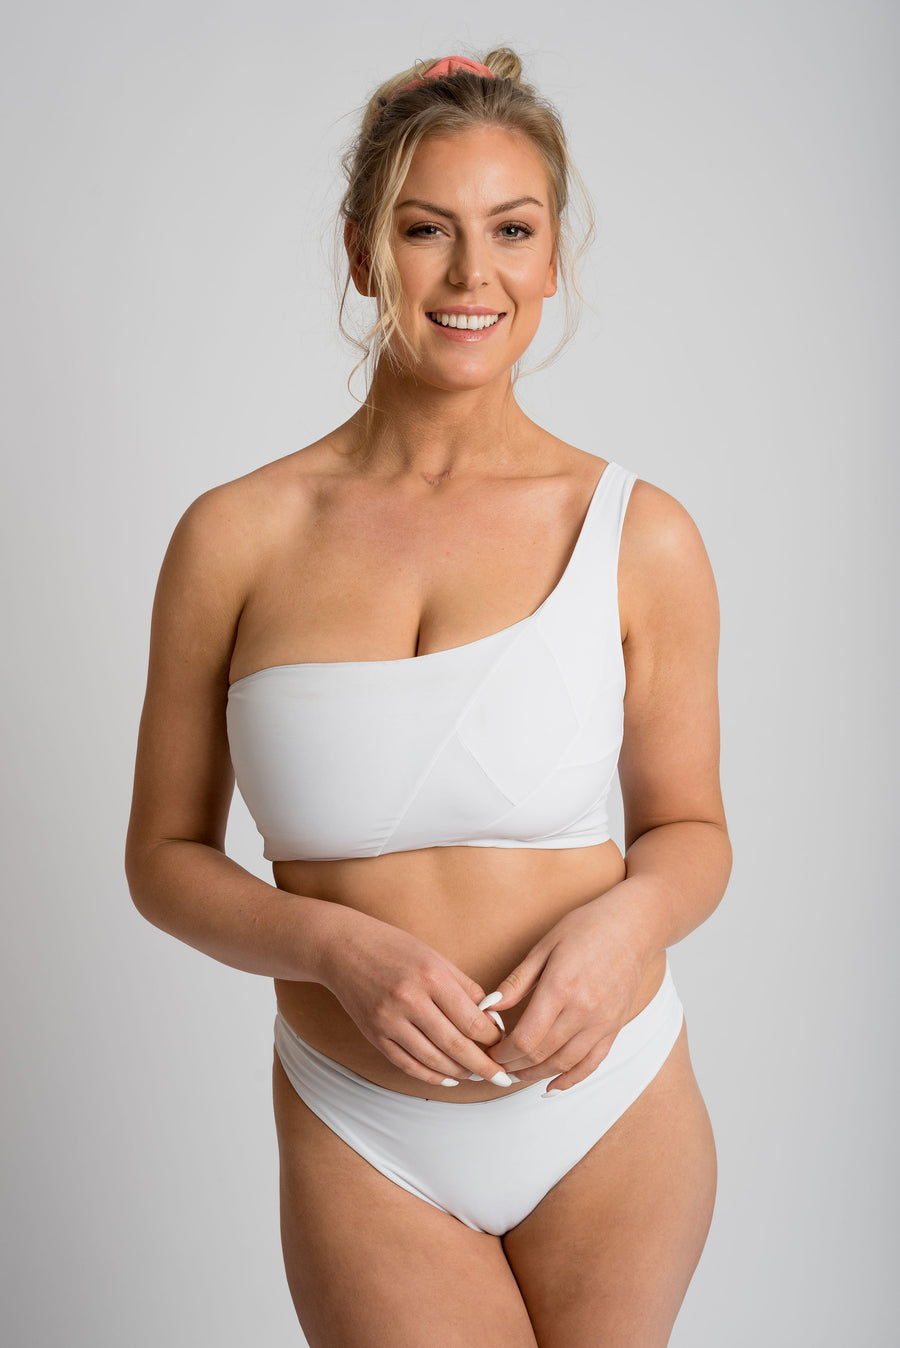 Ethical and sustainable swimwear for women xxs to plus size, recycled ECONYL reversible bikini bottom ethically made in Australia.